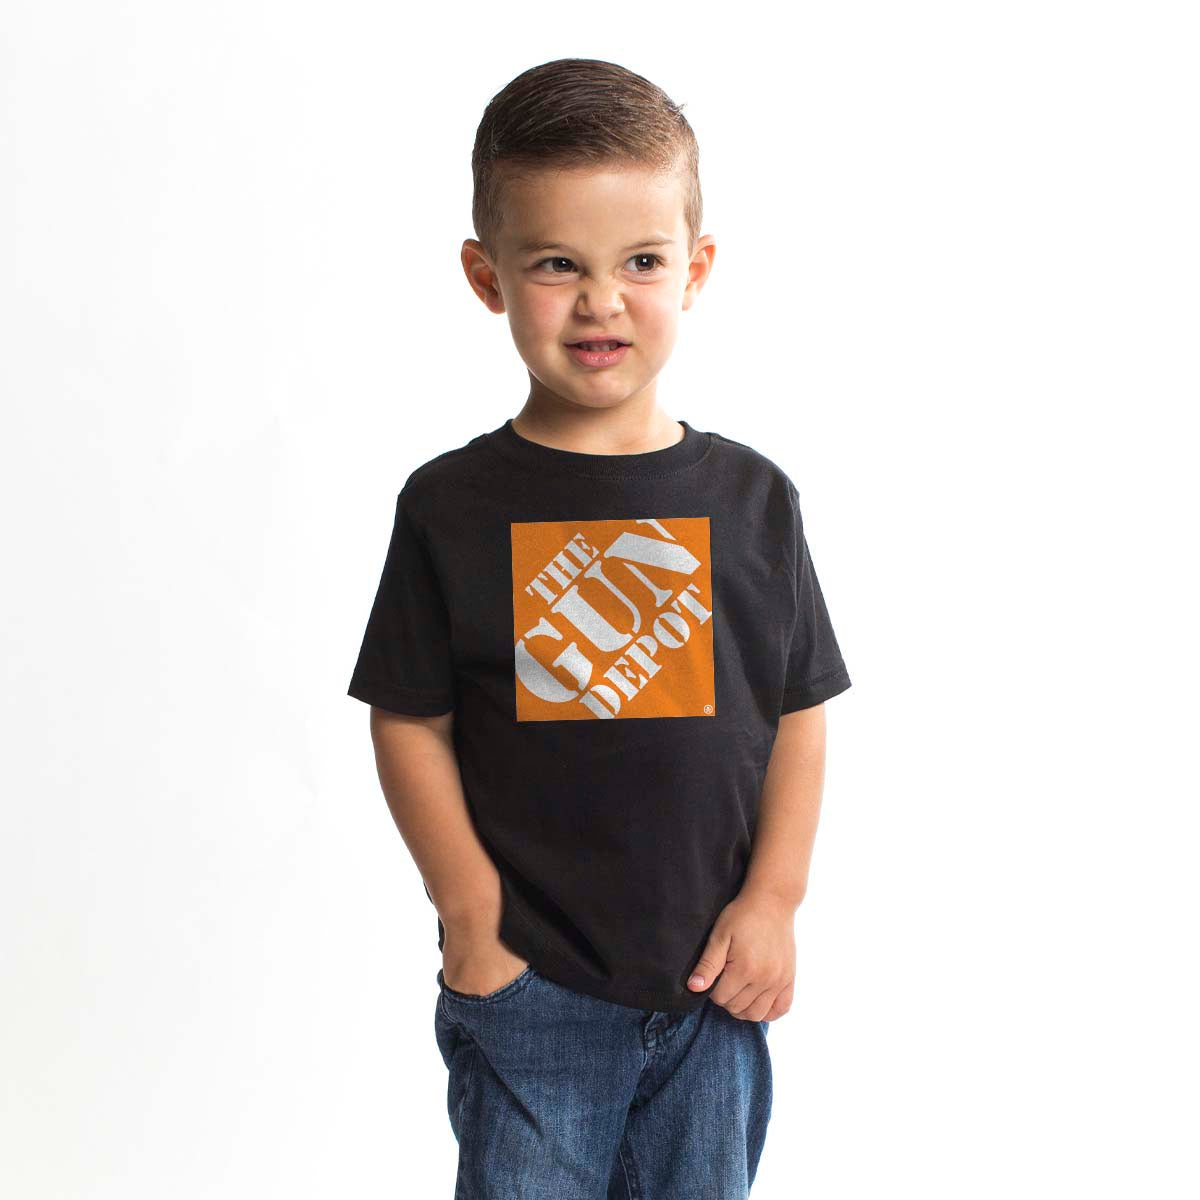 The Gun Depot - Youth - Black/Orange - T-Shirts - Pipe Hitters Union